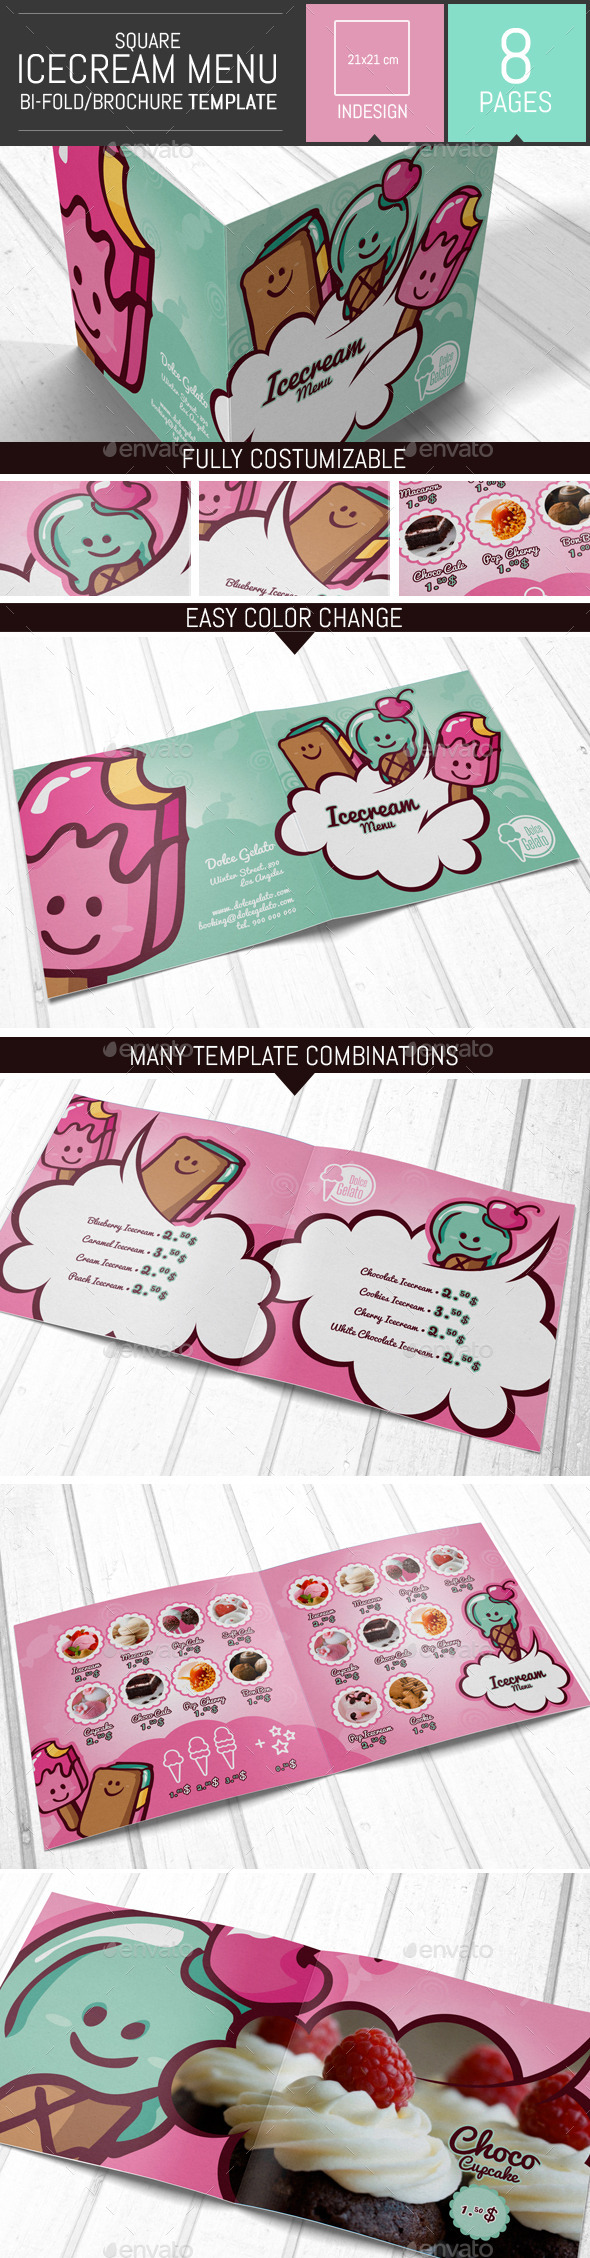 Illustrations Ice cream Brochure Menu Template  - Food Menus Print Templates